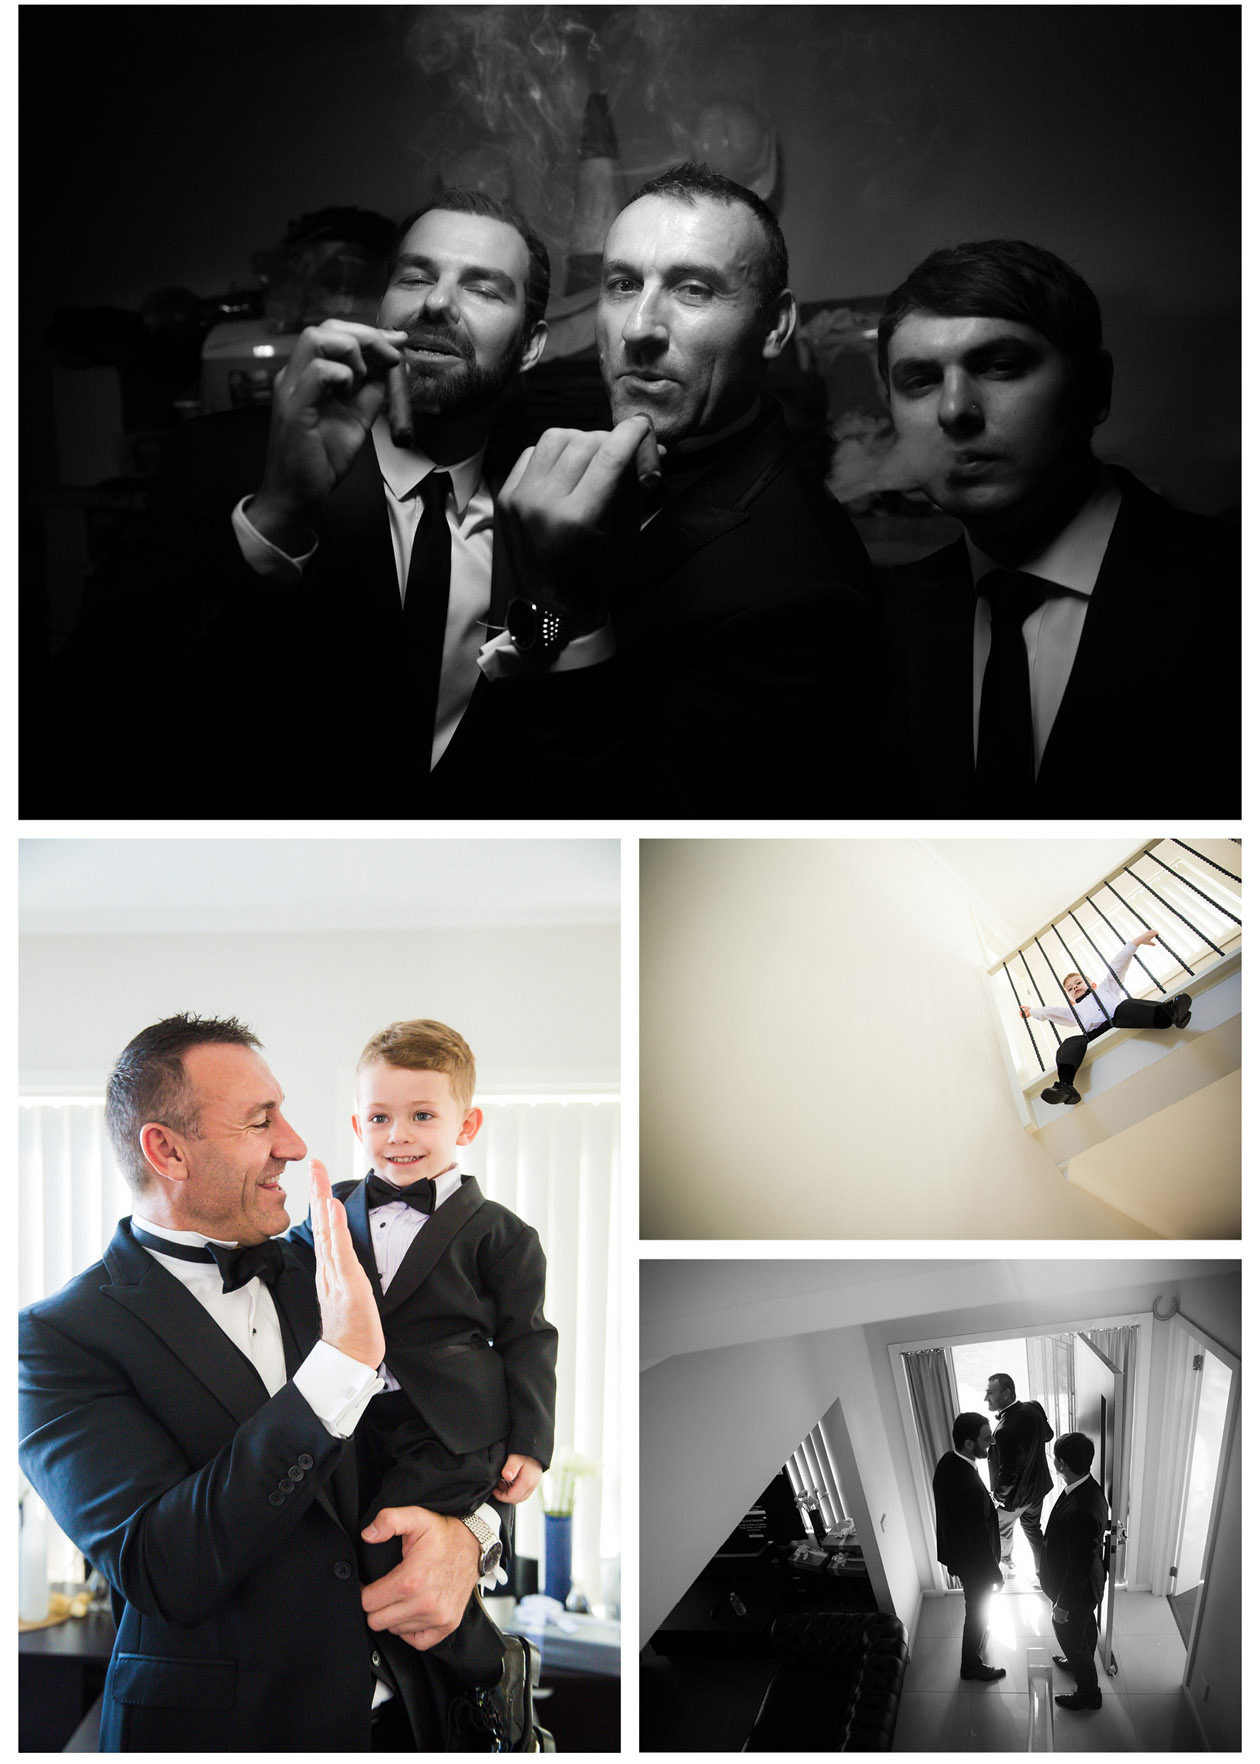 The handsome Macedonian groom took a lot of creative wedding photos with his best man before the wedding in Stones of the Yarra Valley